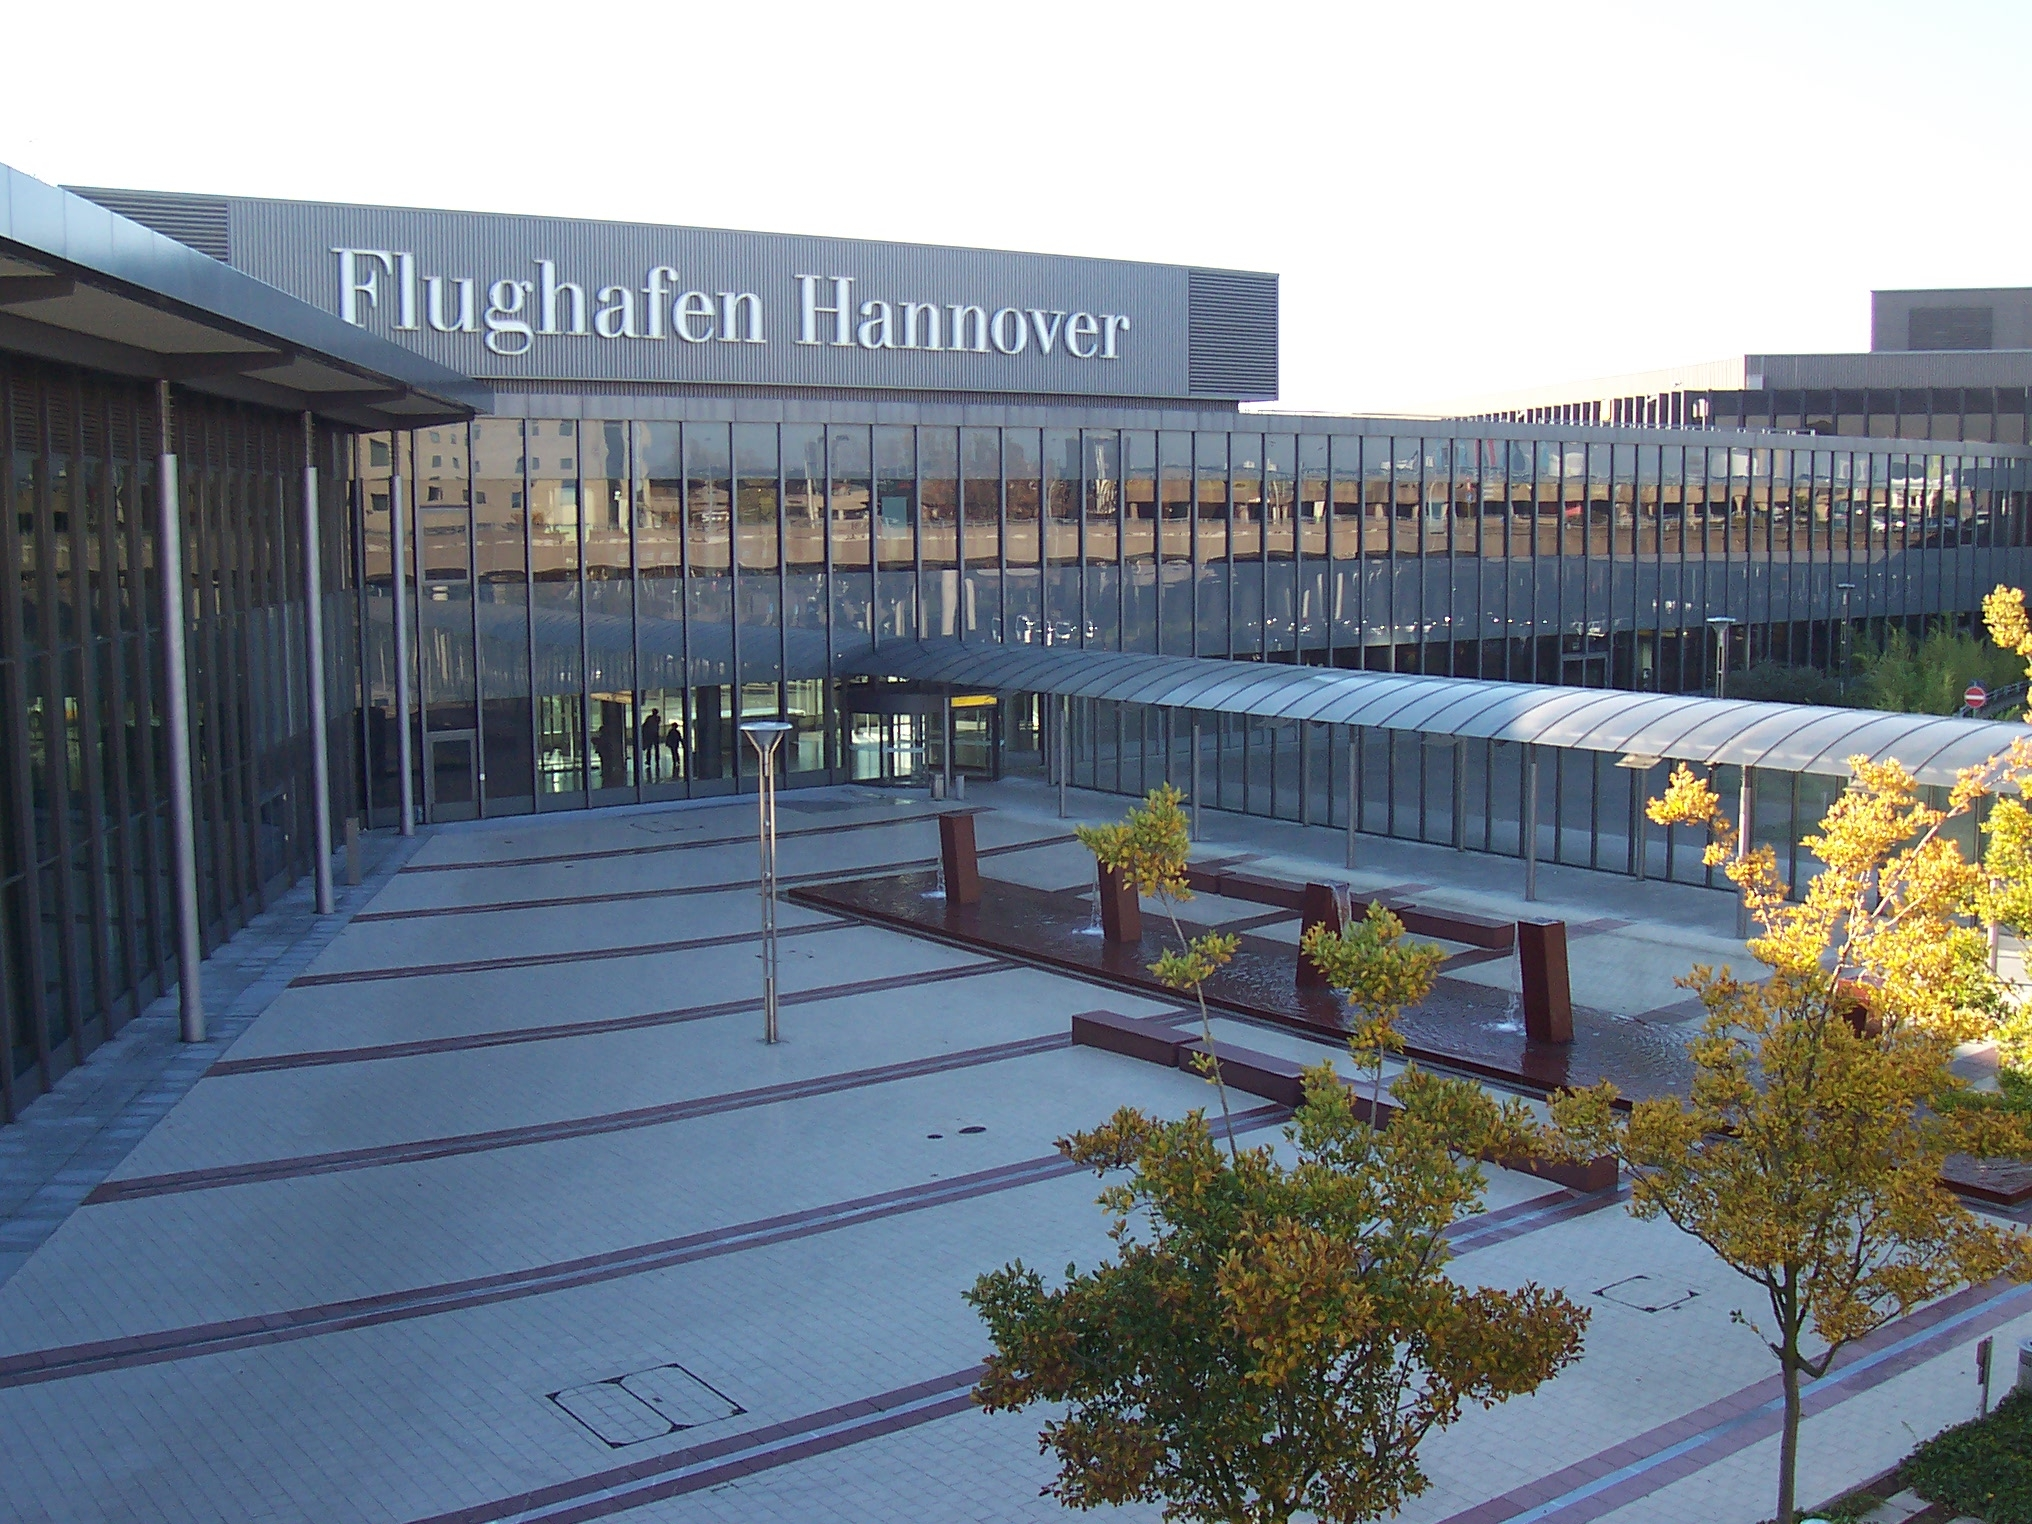 Expo Plaza Hannover Hanover Travel Guide At Wikivoyage